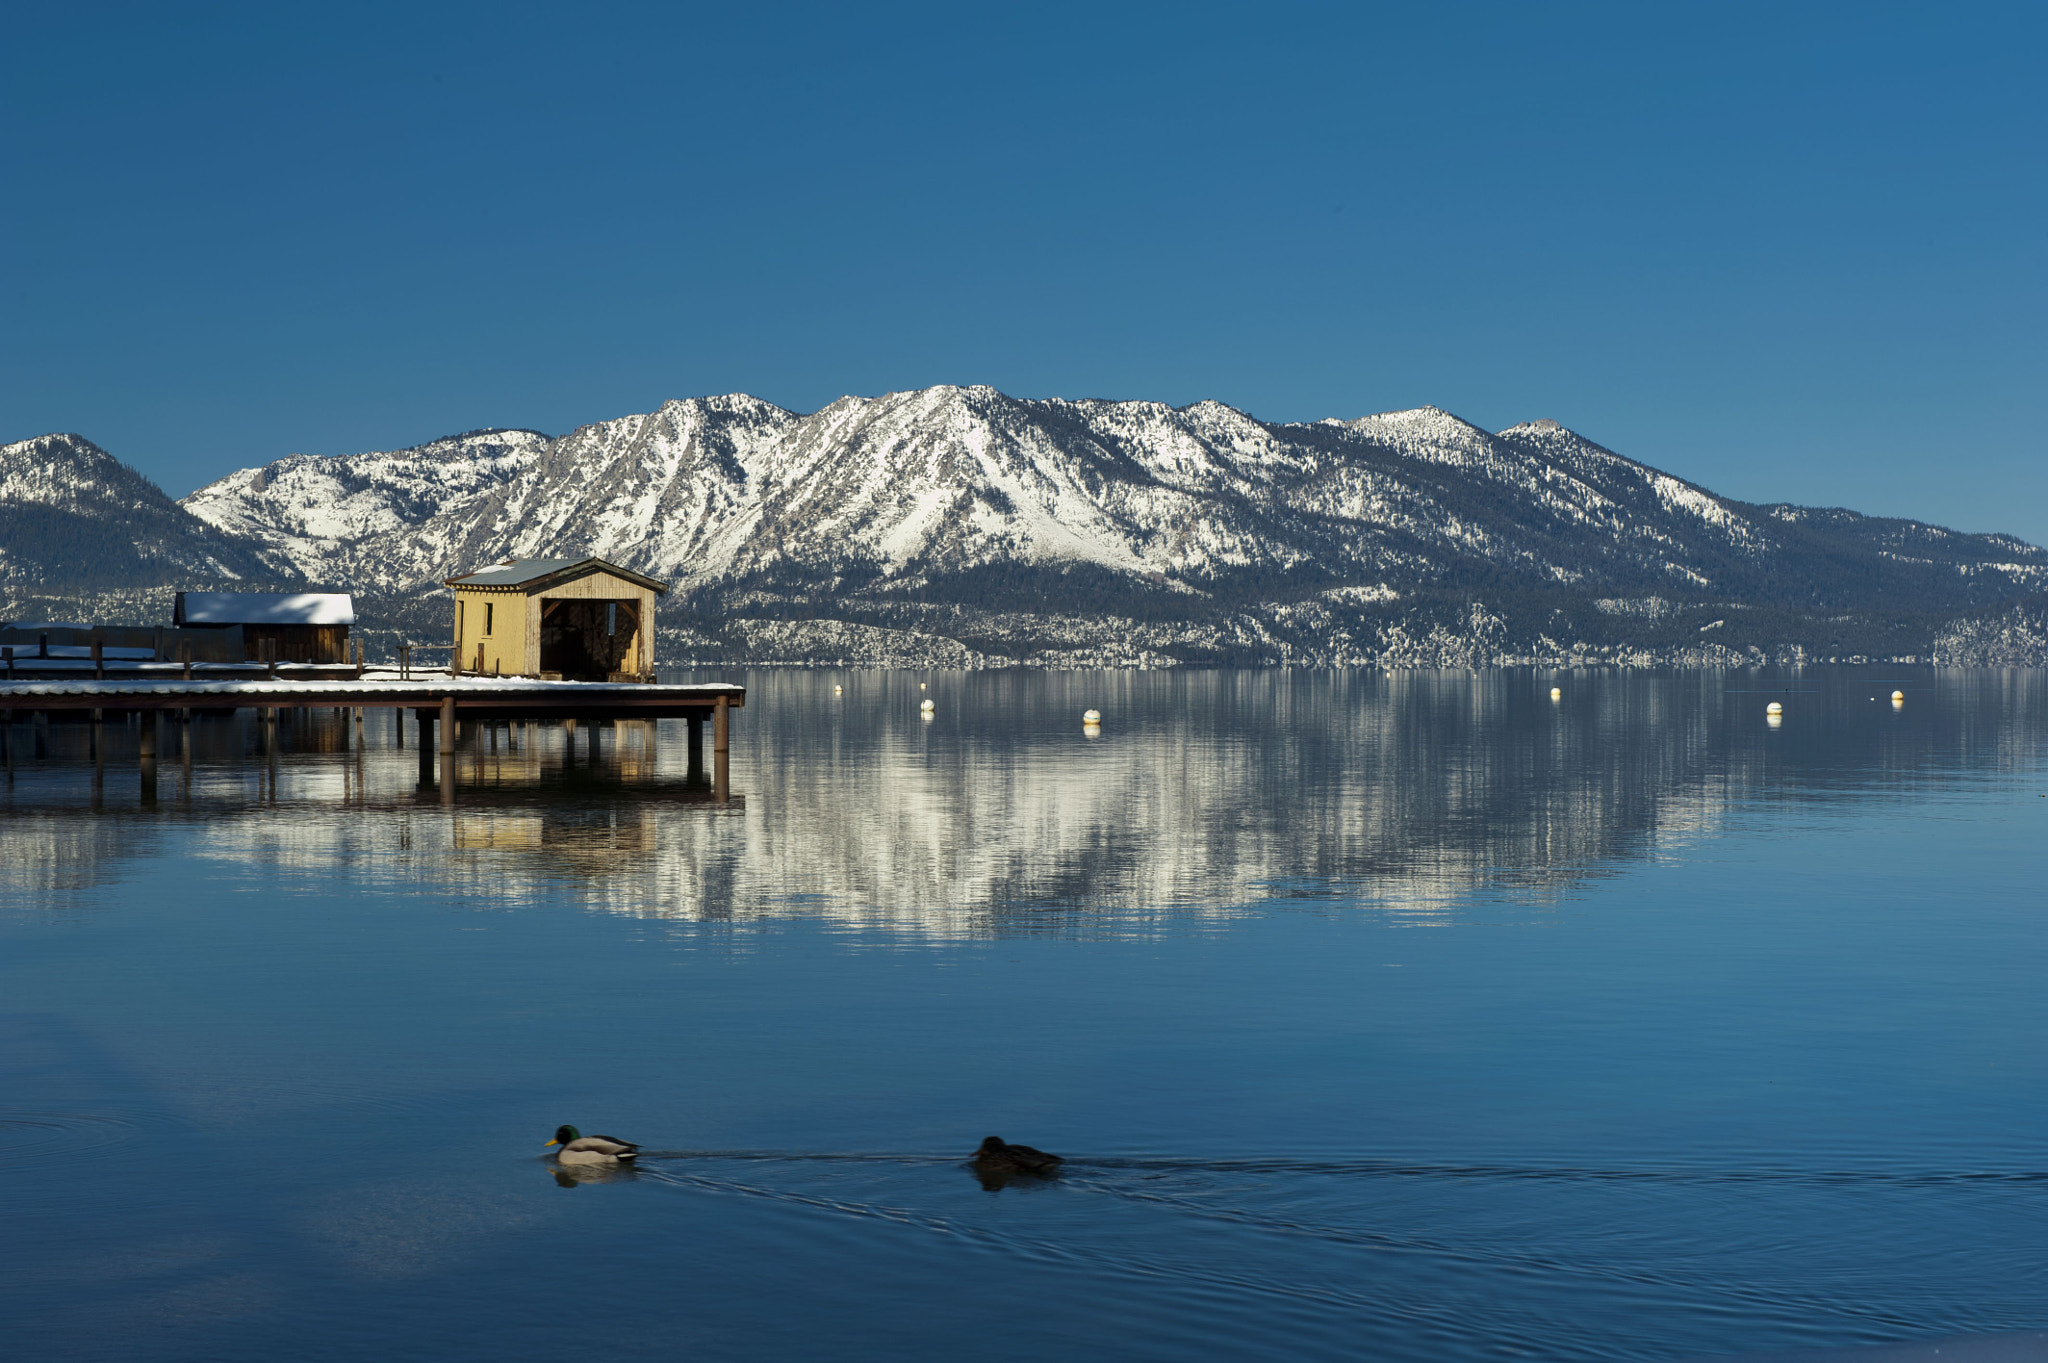 Photograph Lake Tahoe by Jaypee Verdaguer on 500px